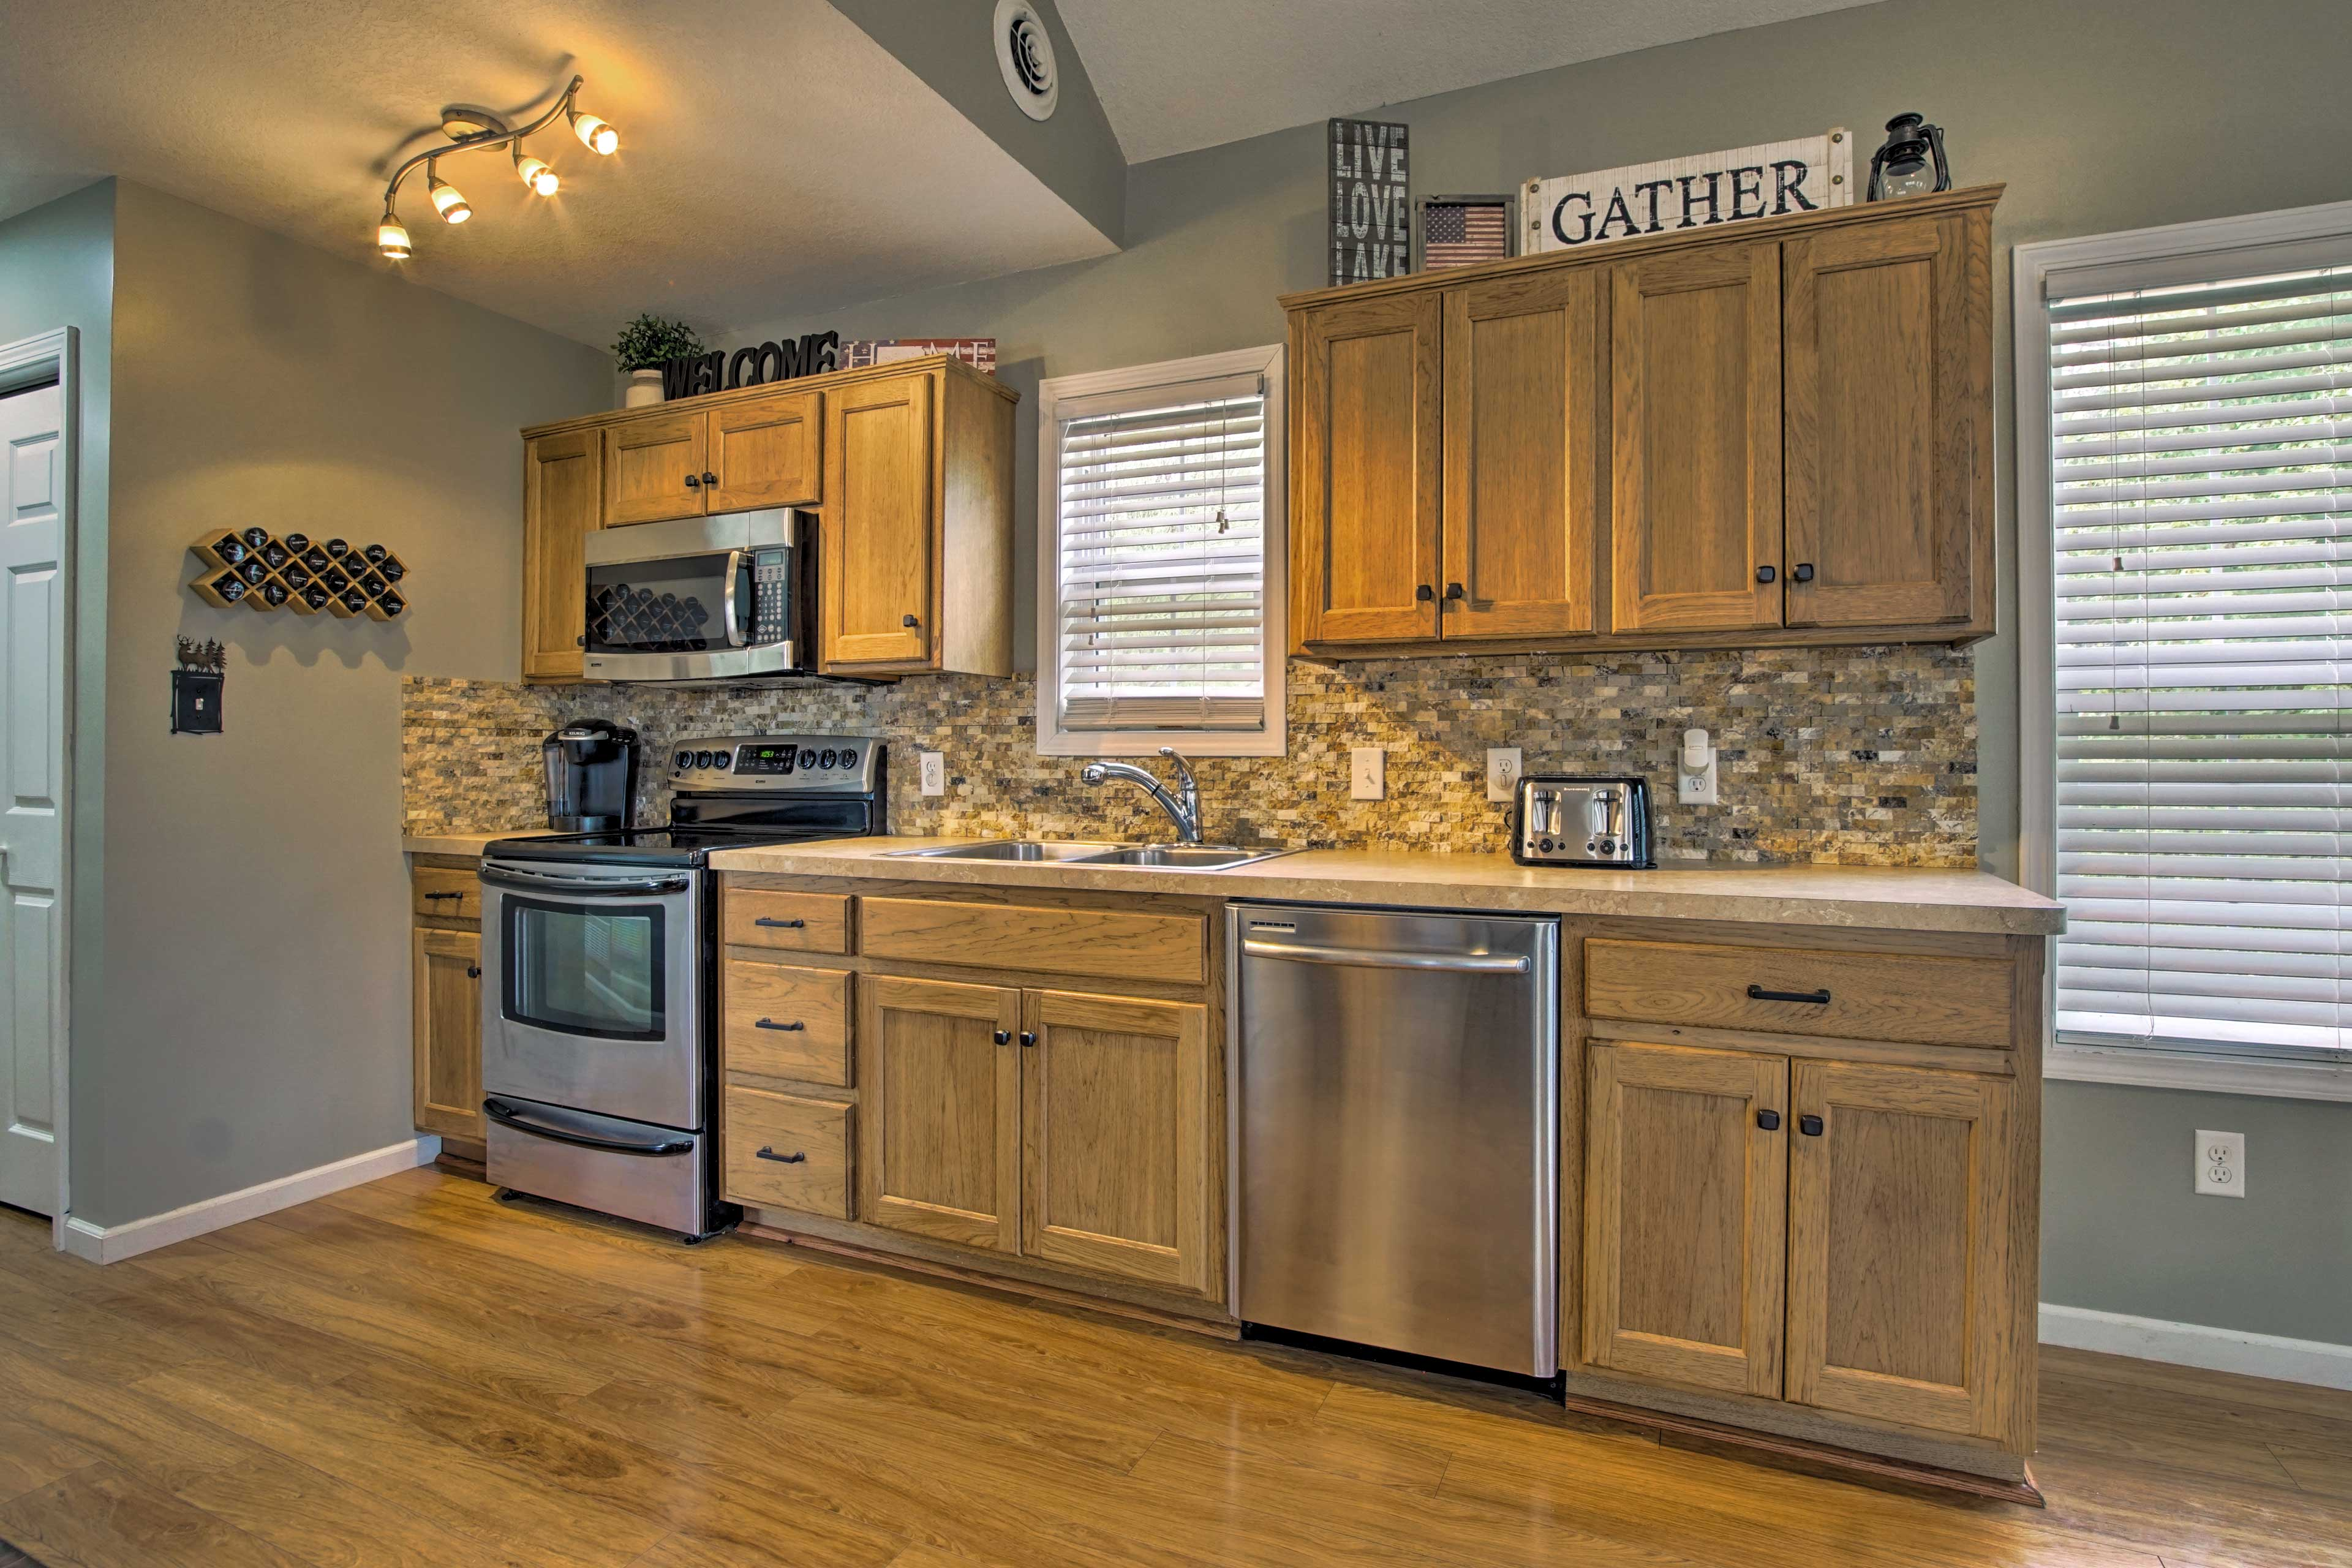 Effortlessly prepare a home-cooked meal with stainless steel appliances.